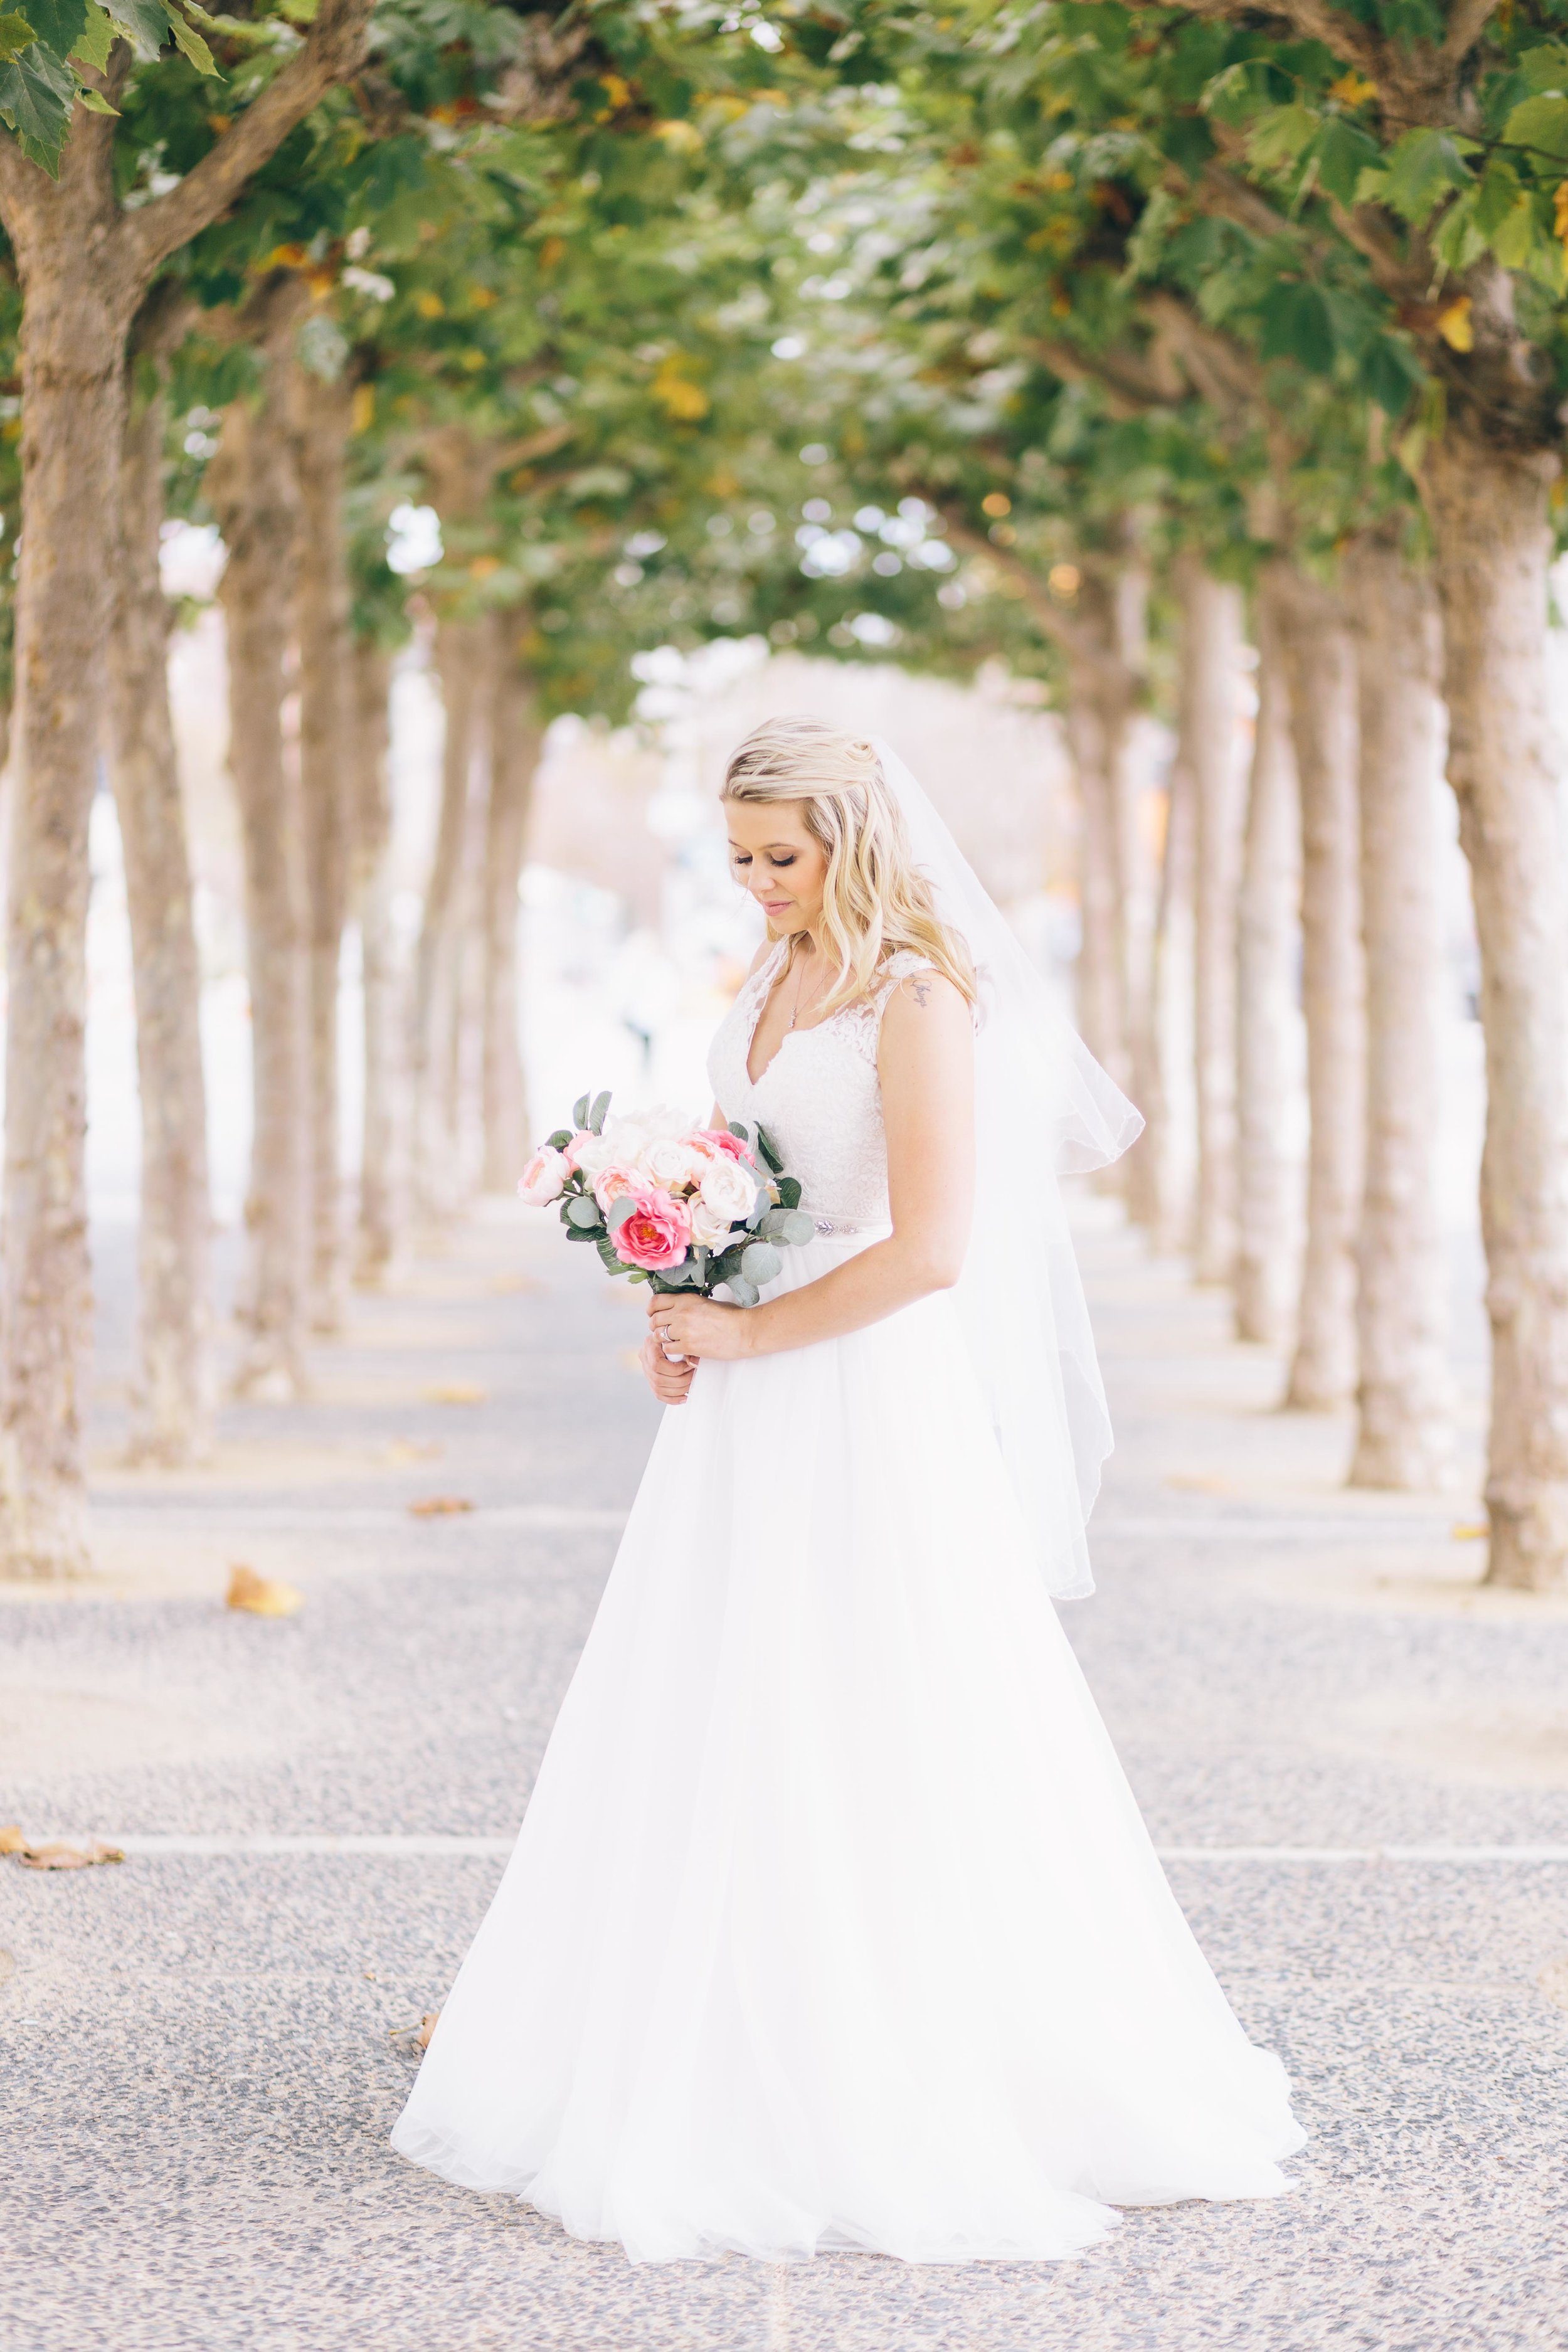 Pre-Wedding Bridal Portraits in San Francisco, Napa and Sonoma by JBJ Pictures Engagement and Wedding Photographer (10).jpg